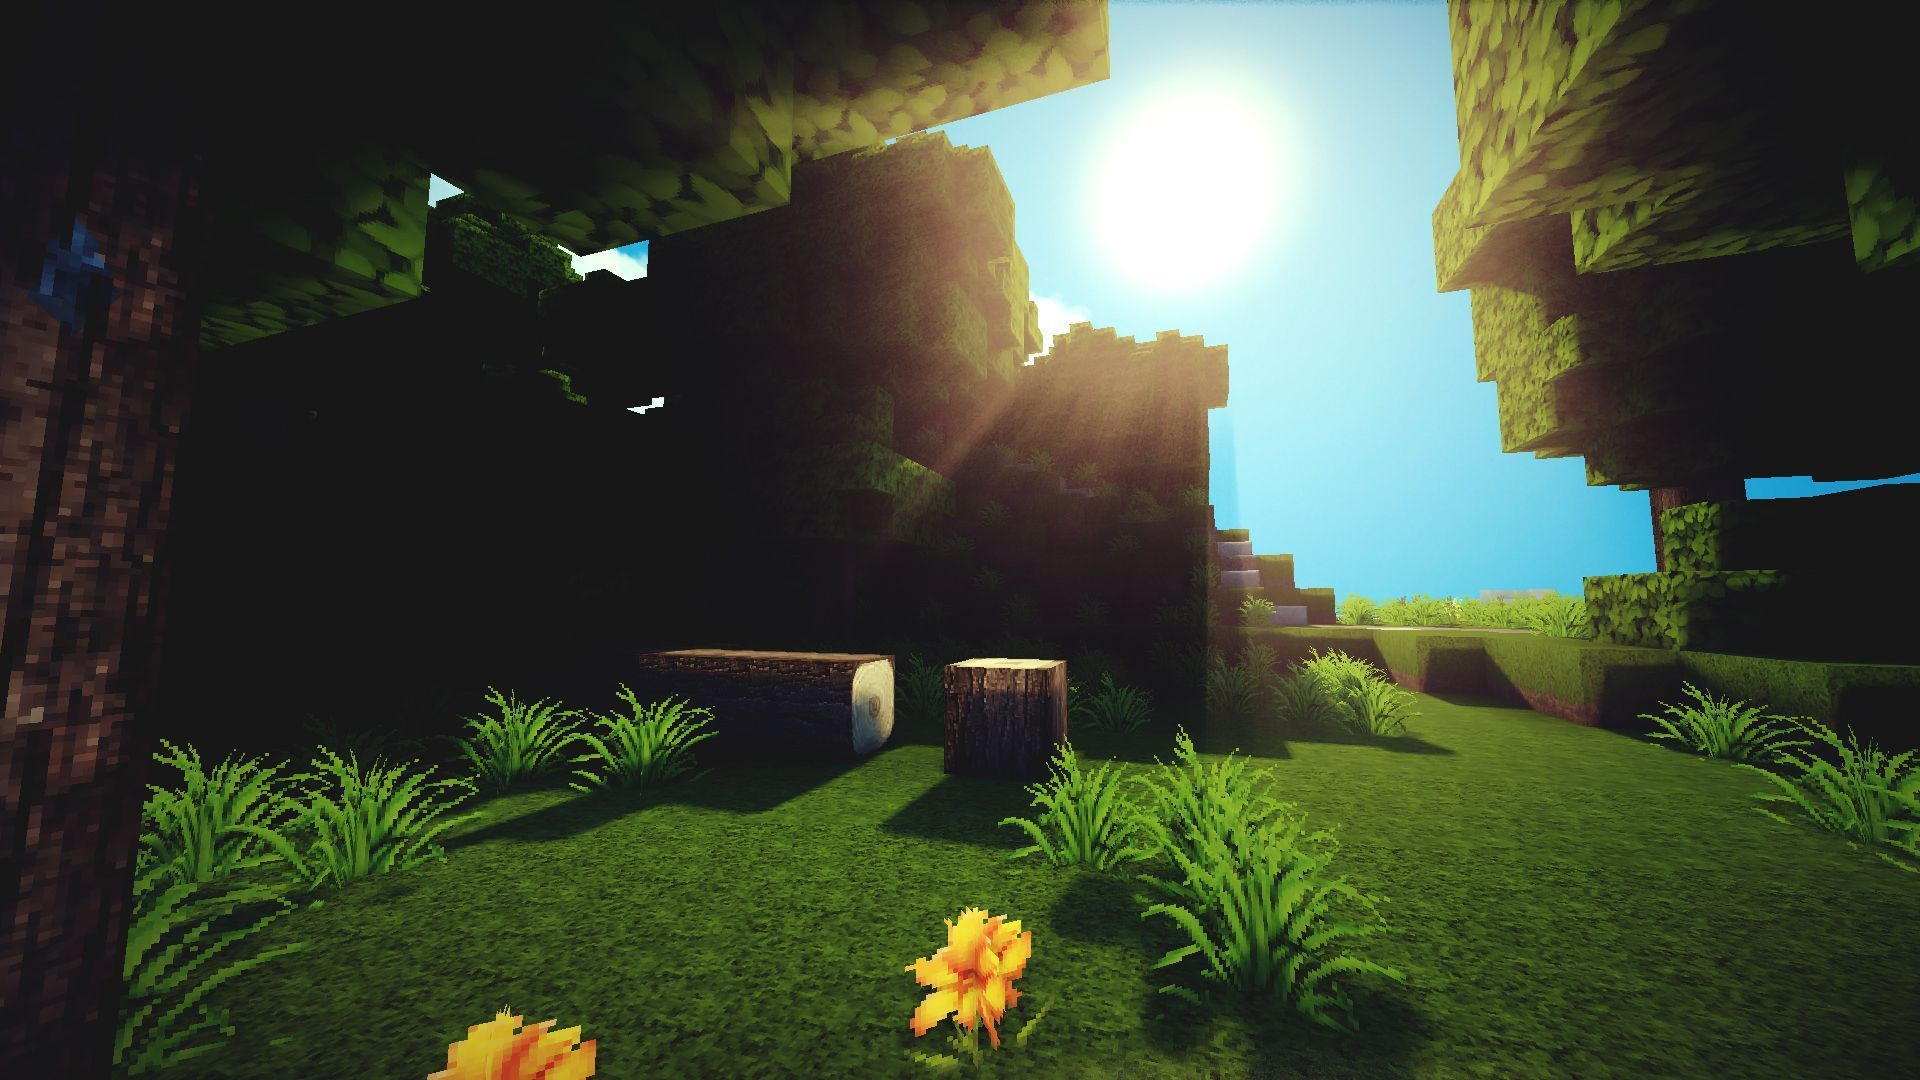 3d Minecraft Wallpapers Posted By Zoey Sellers